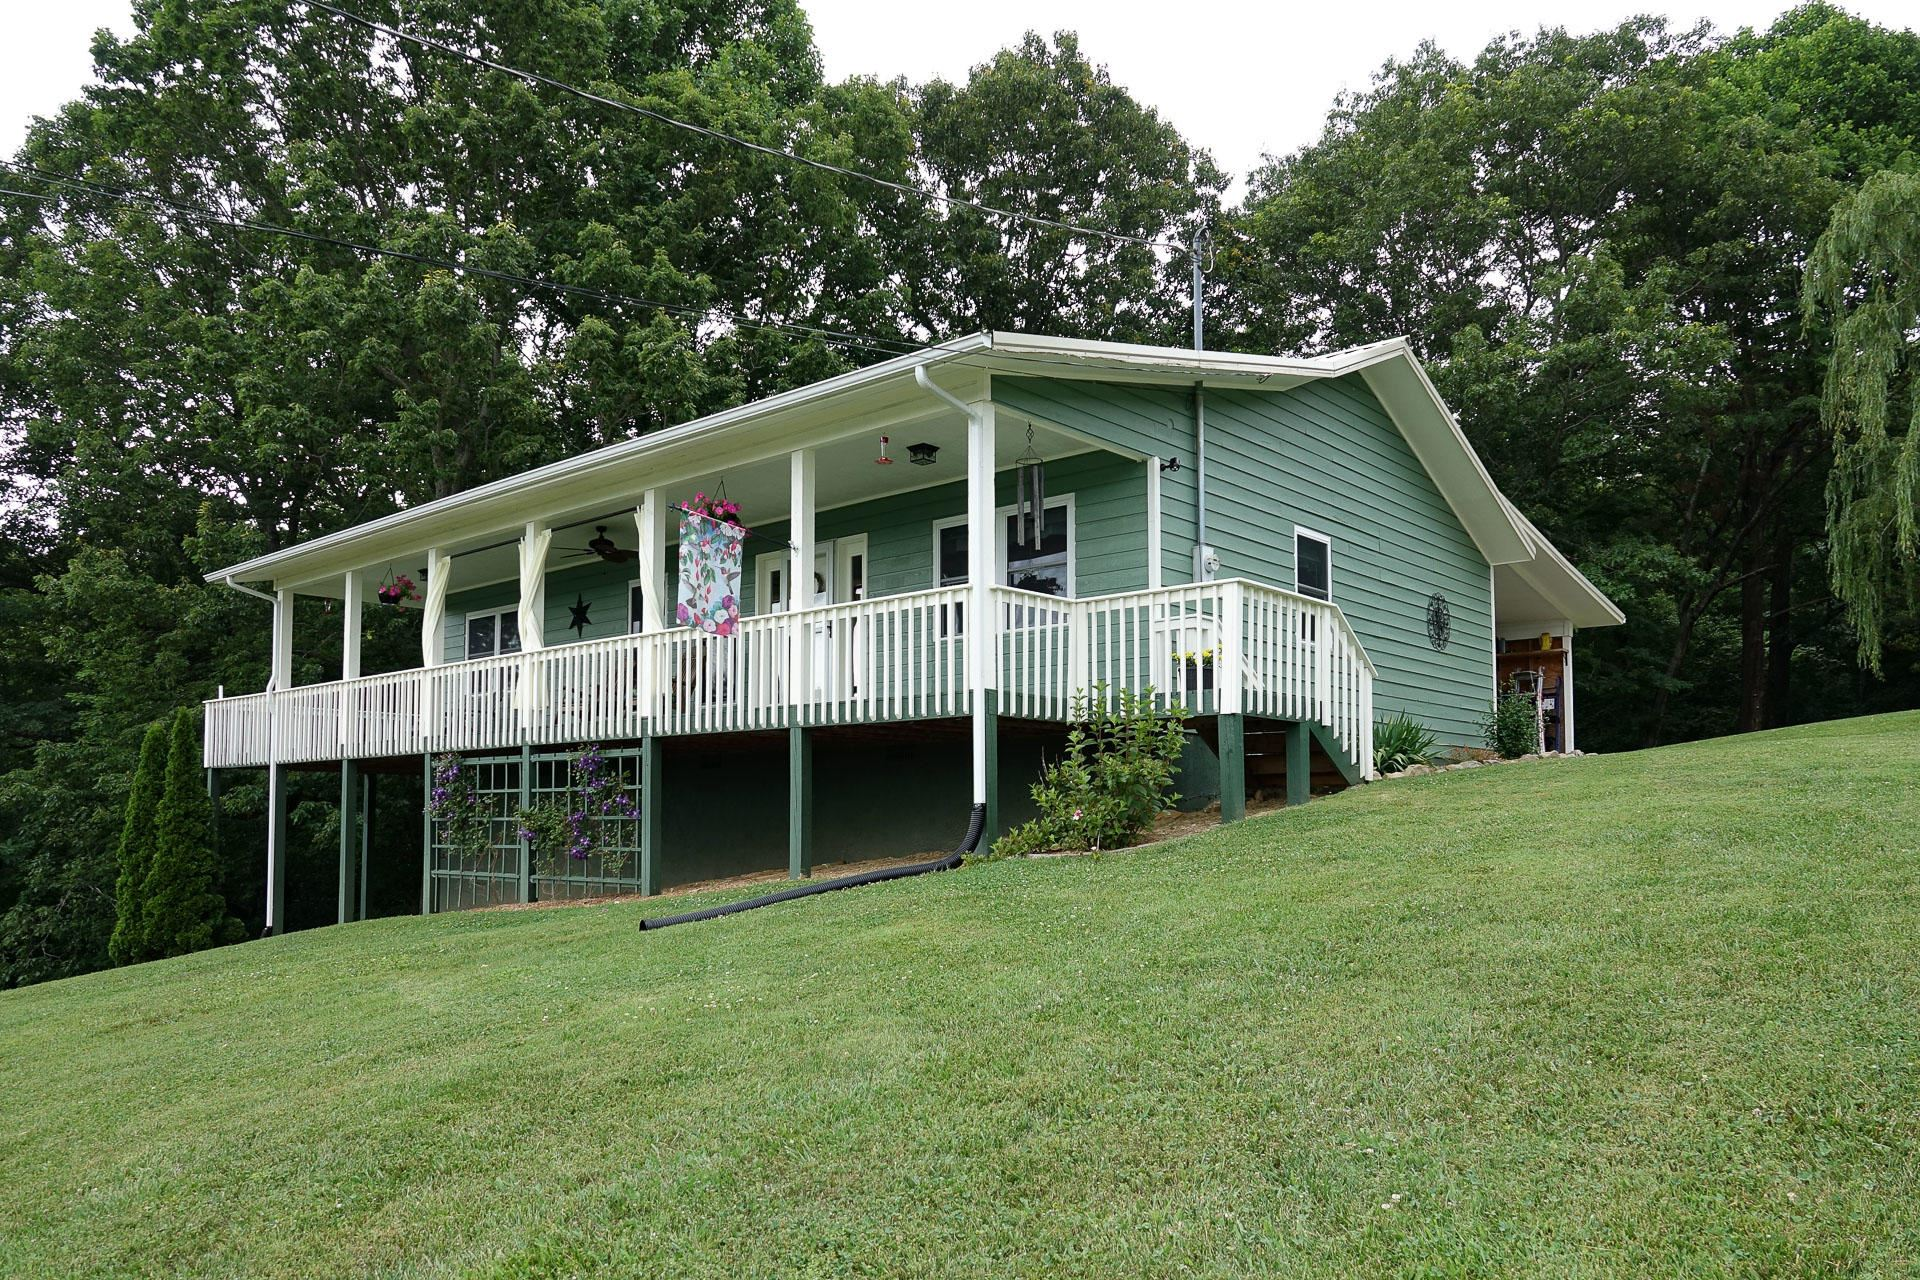 Photo of 3401 Barber Way, Sevierville, TN 37862 (MLS # 1120752)